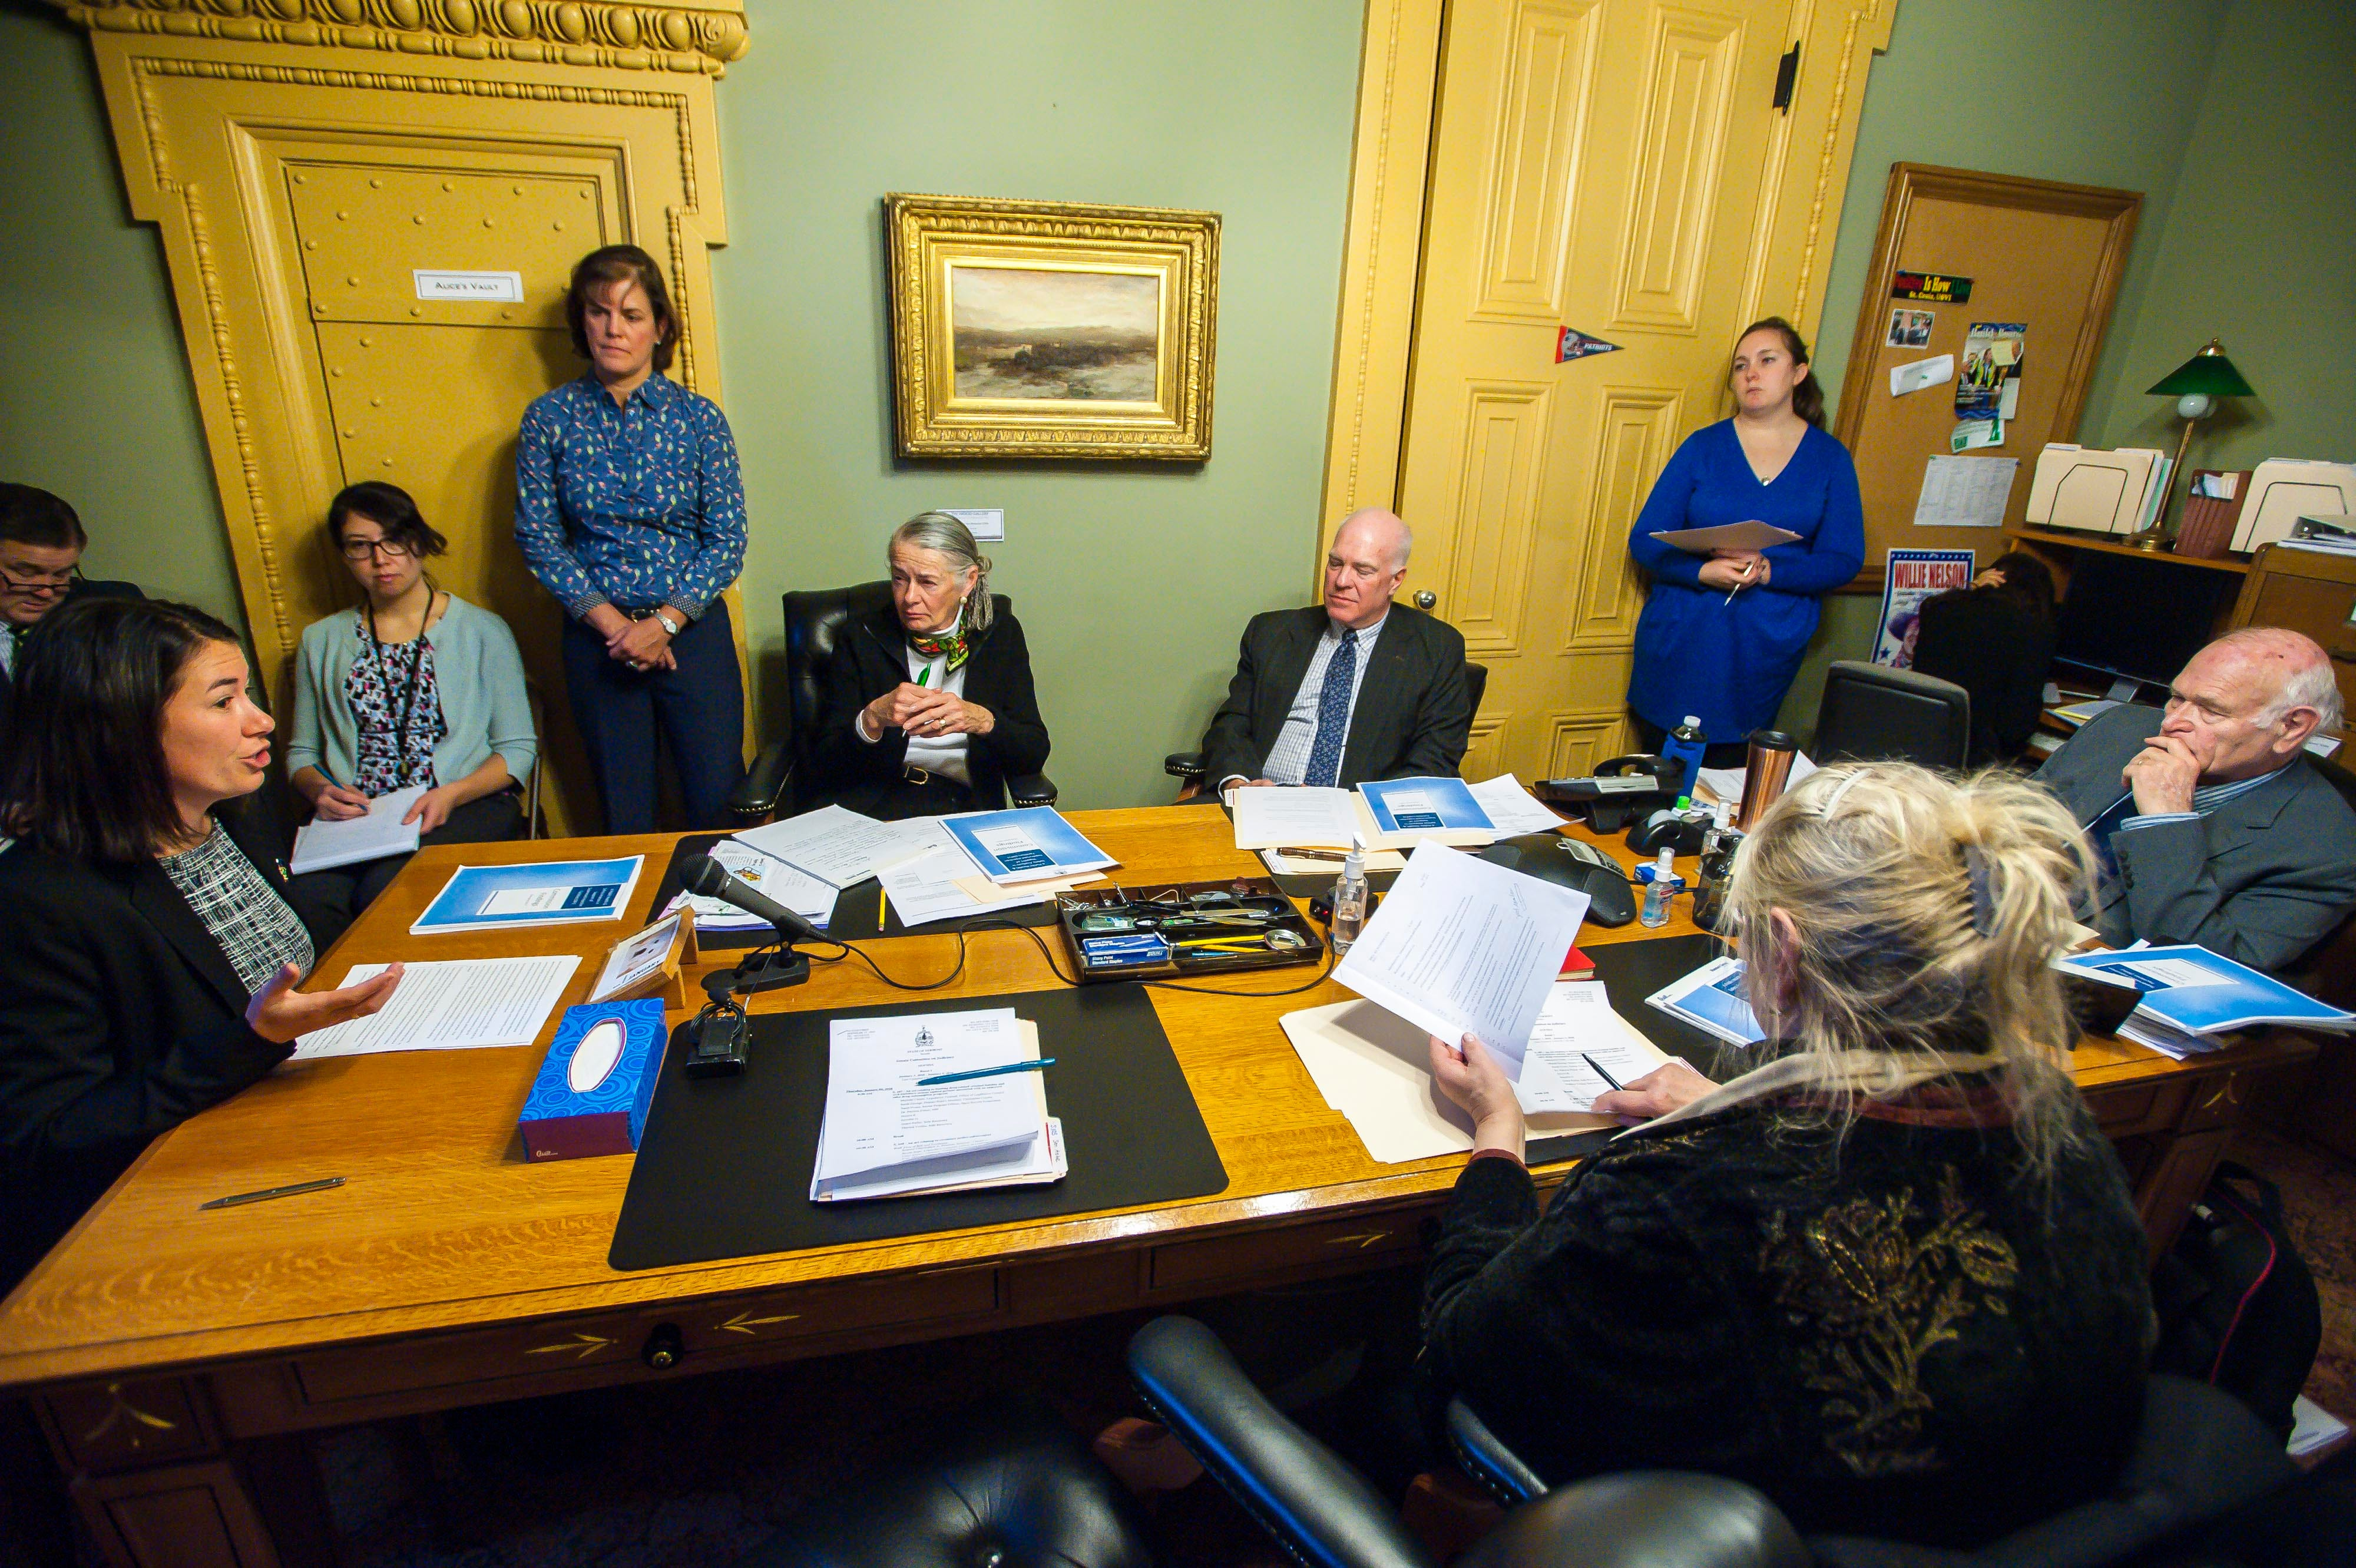 Chittenden County prosecutor Sarah George wants to save opiate addicts -- not lock them up | Burlington Free Press